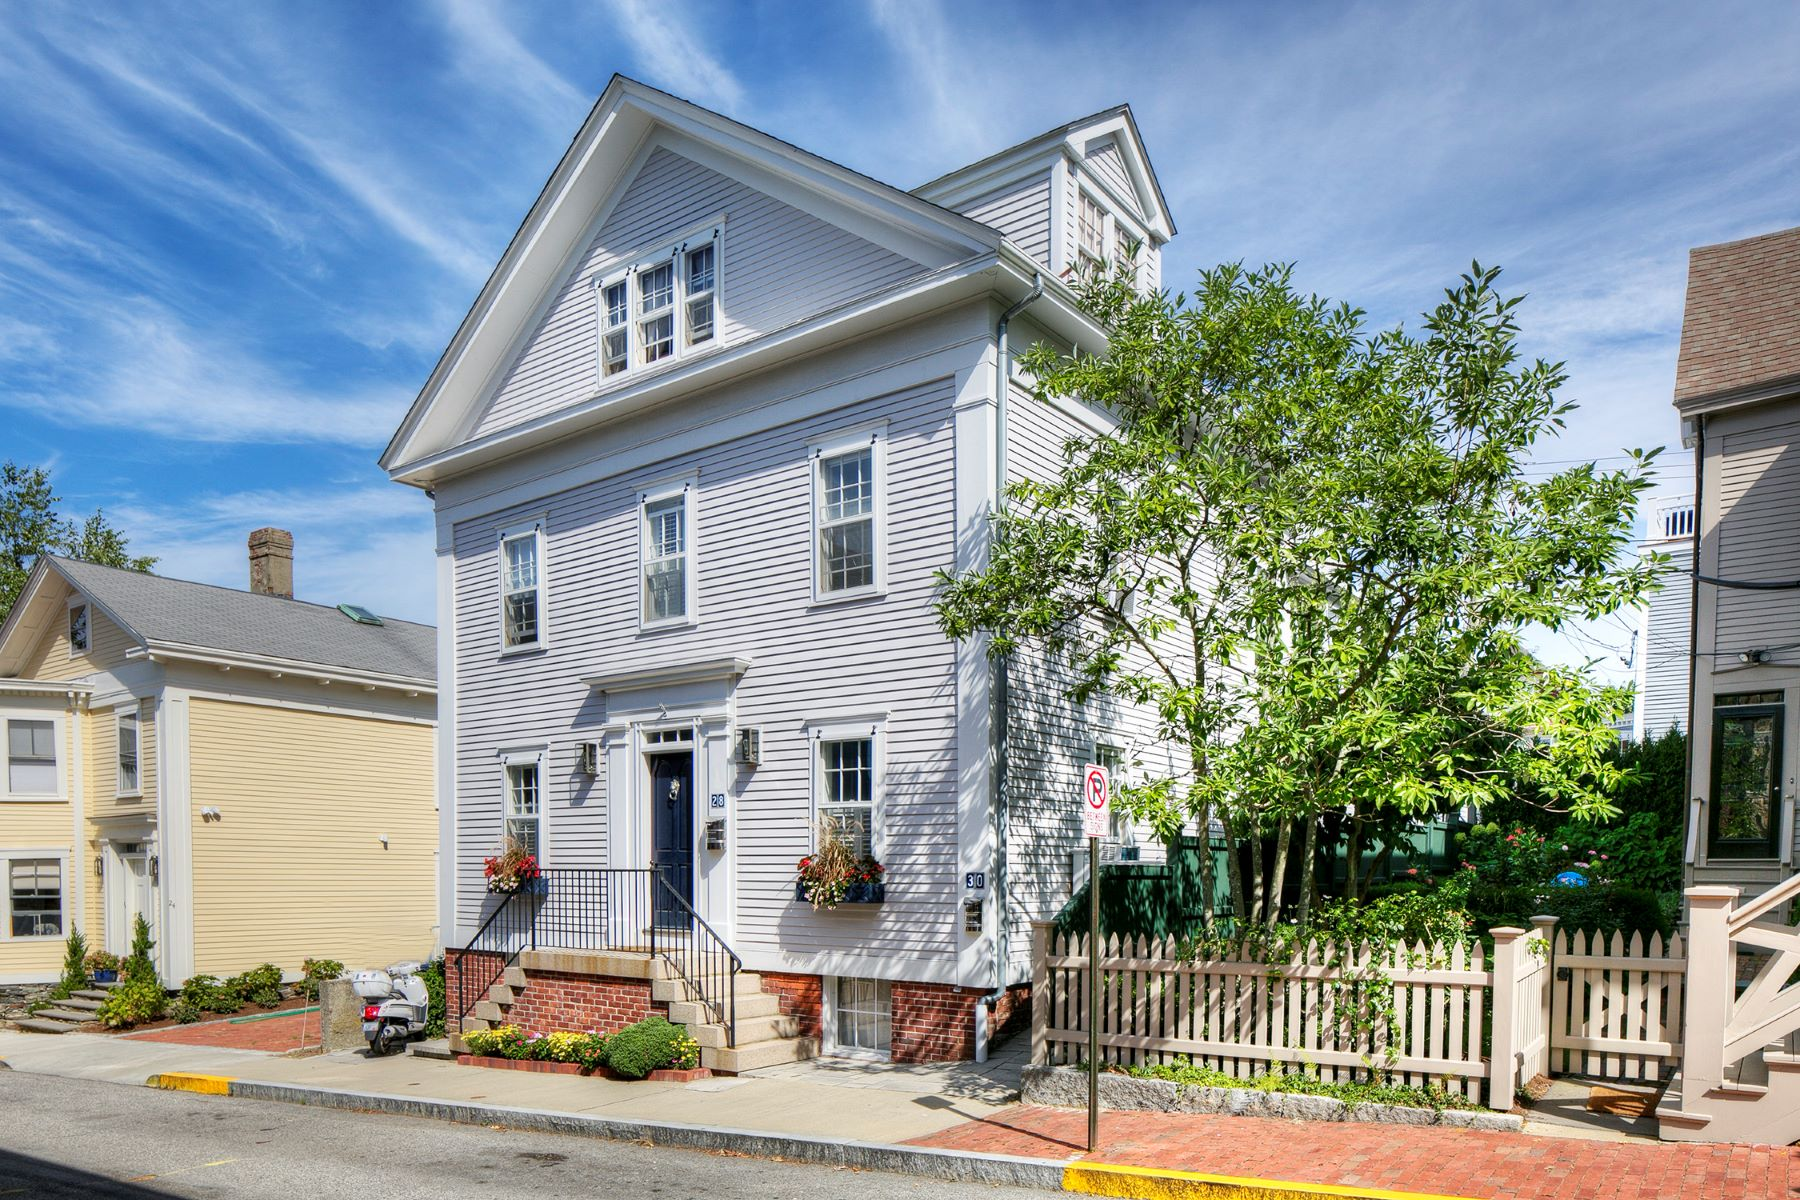 Multi-Family Homes for Sale at Greek Revival with Legal Apartment 28 30 John Street Newport, Rhode Island 02840 United States